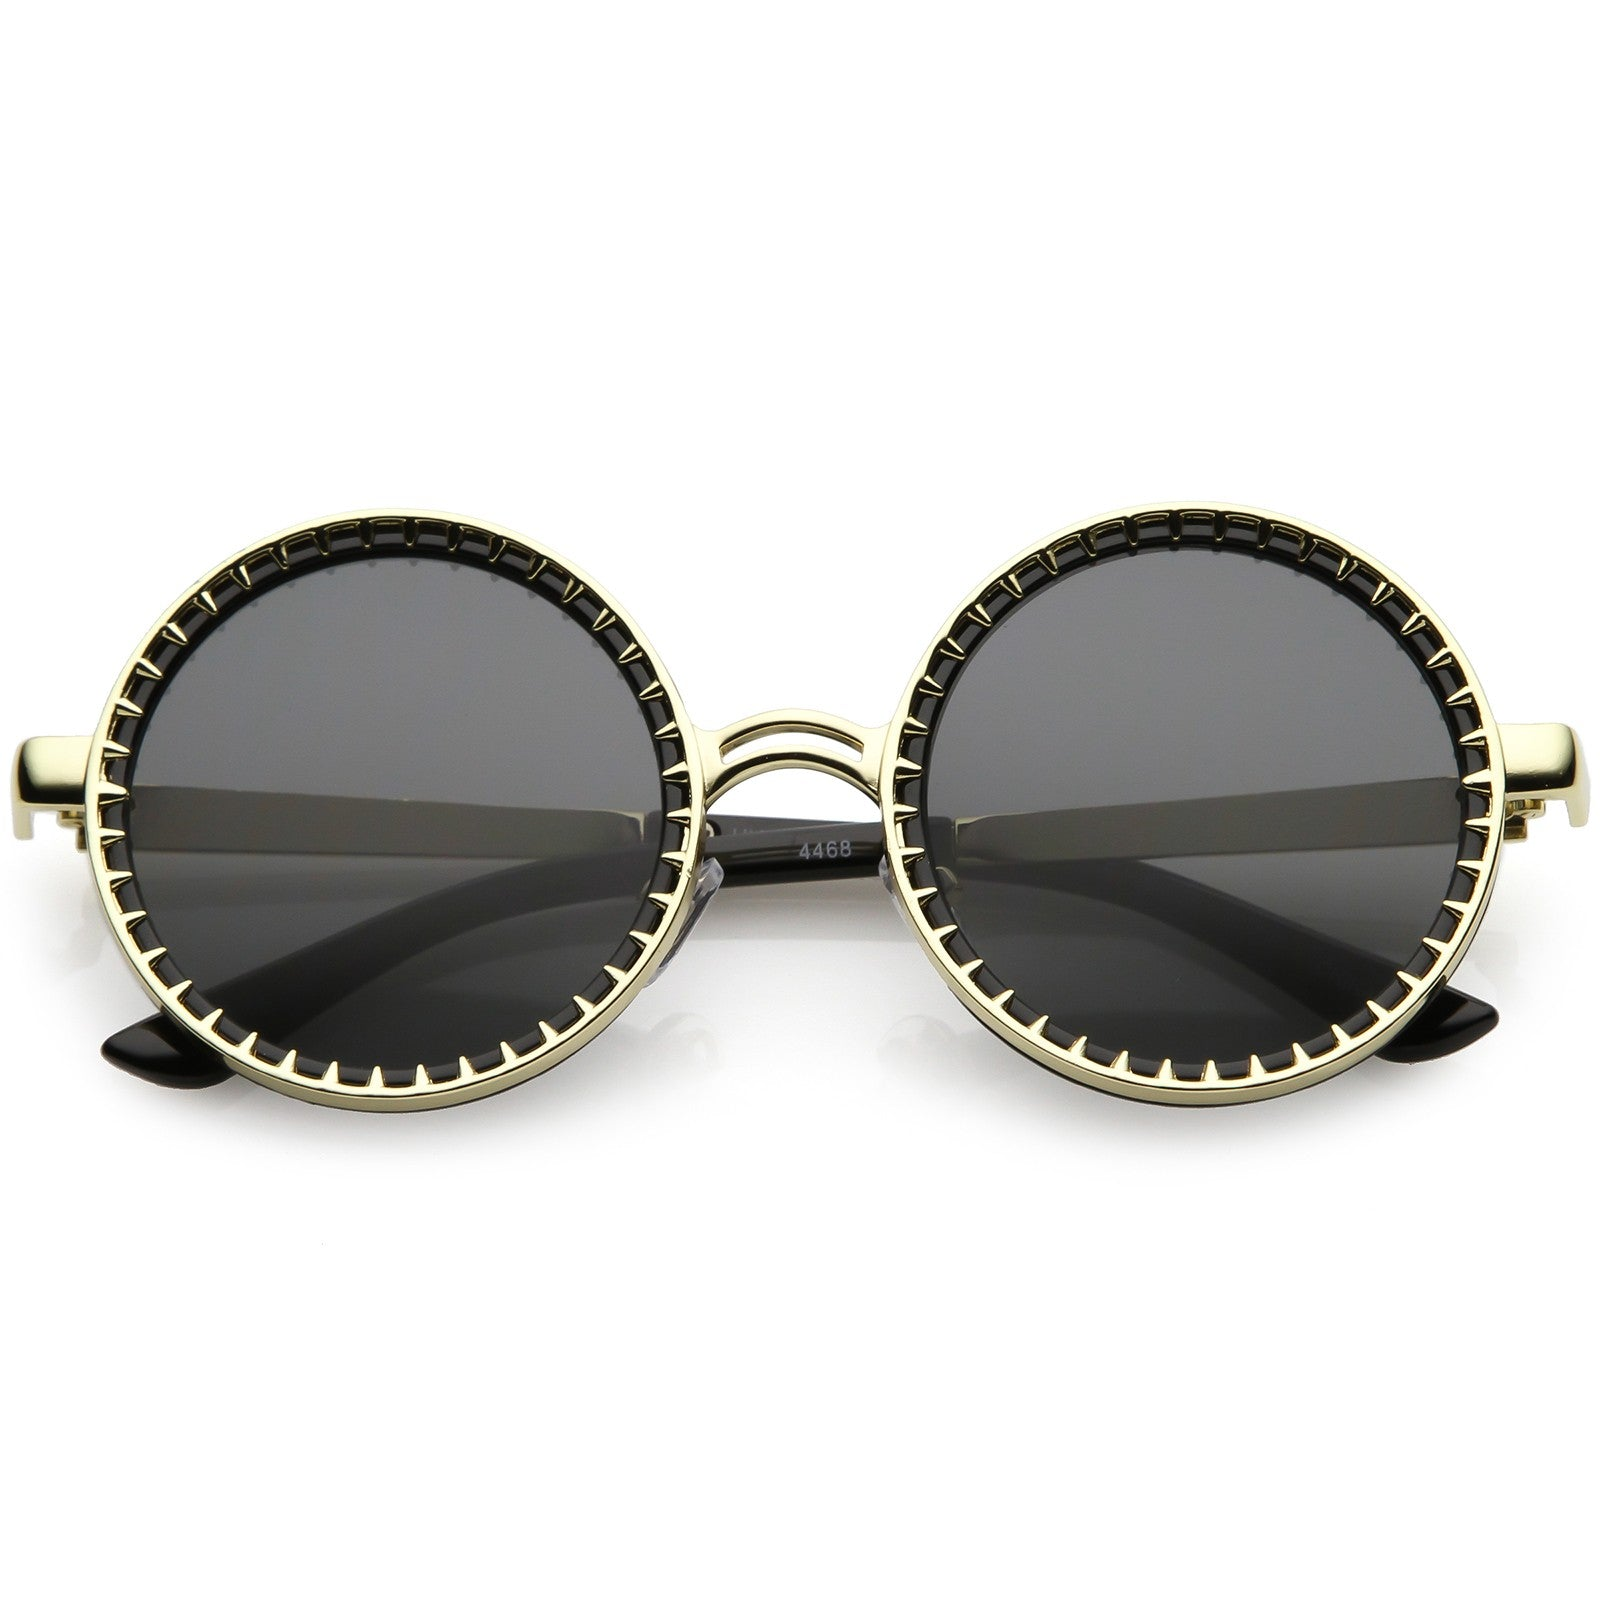 Steampunk Metal Round Sunglasses With Spike Detail And Flat Lens 50mm (Gold Tortoise / Amber) - Trendsetterco